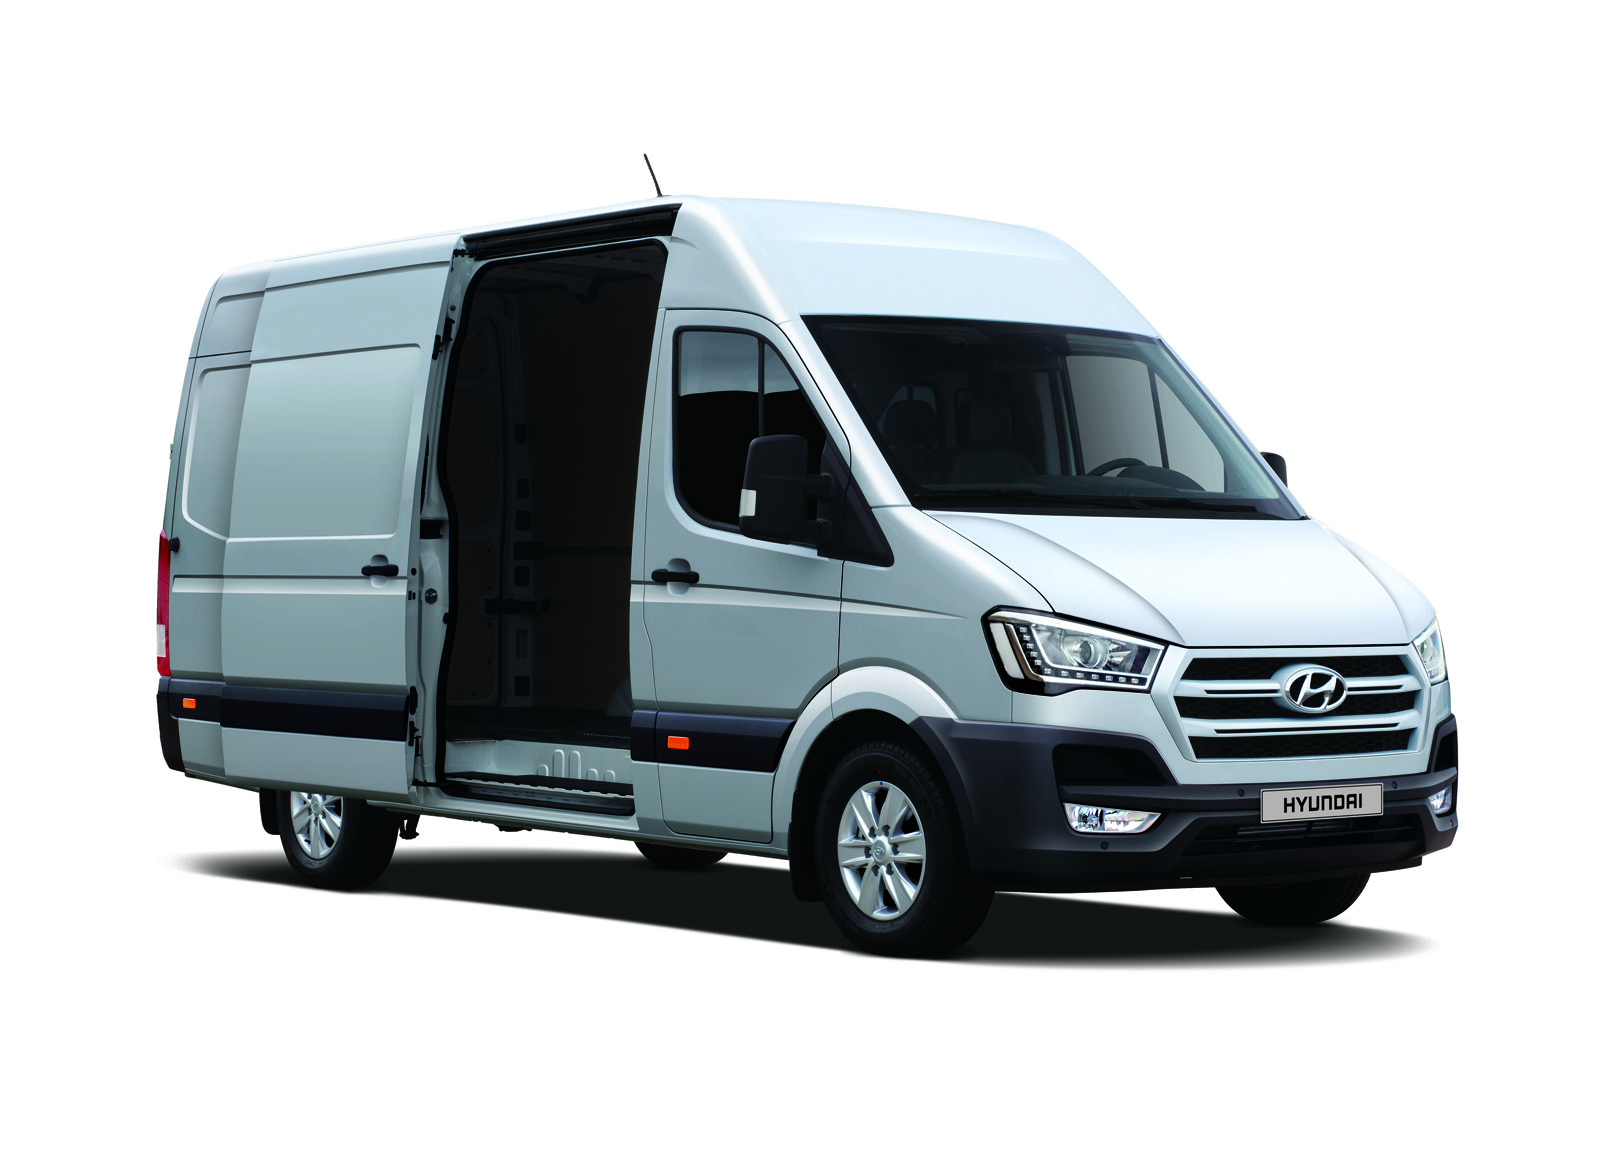 Ford Transit 350 >> Hyundai H350 is a Ford Transit Look-Alike Made in Turkey ...